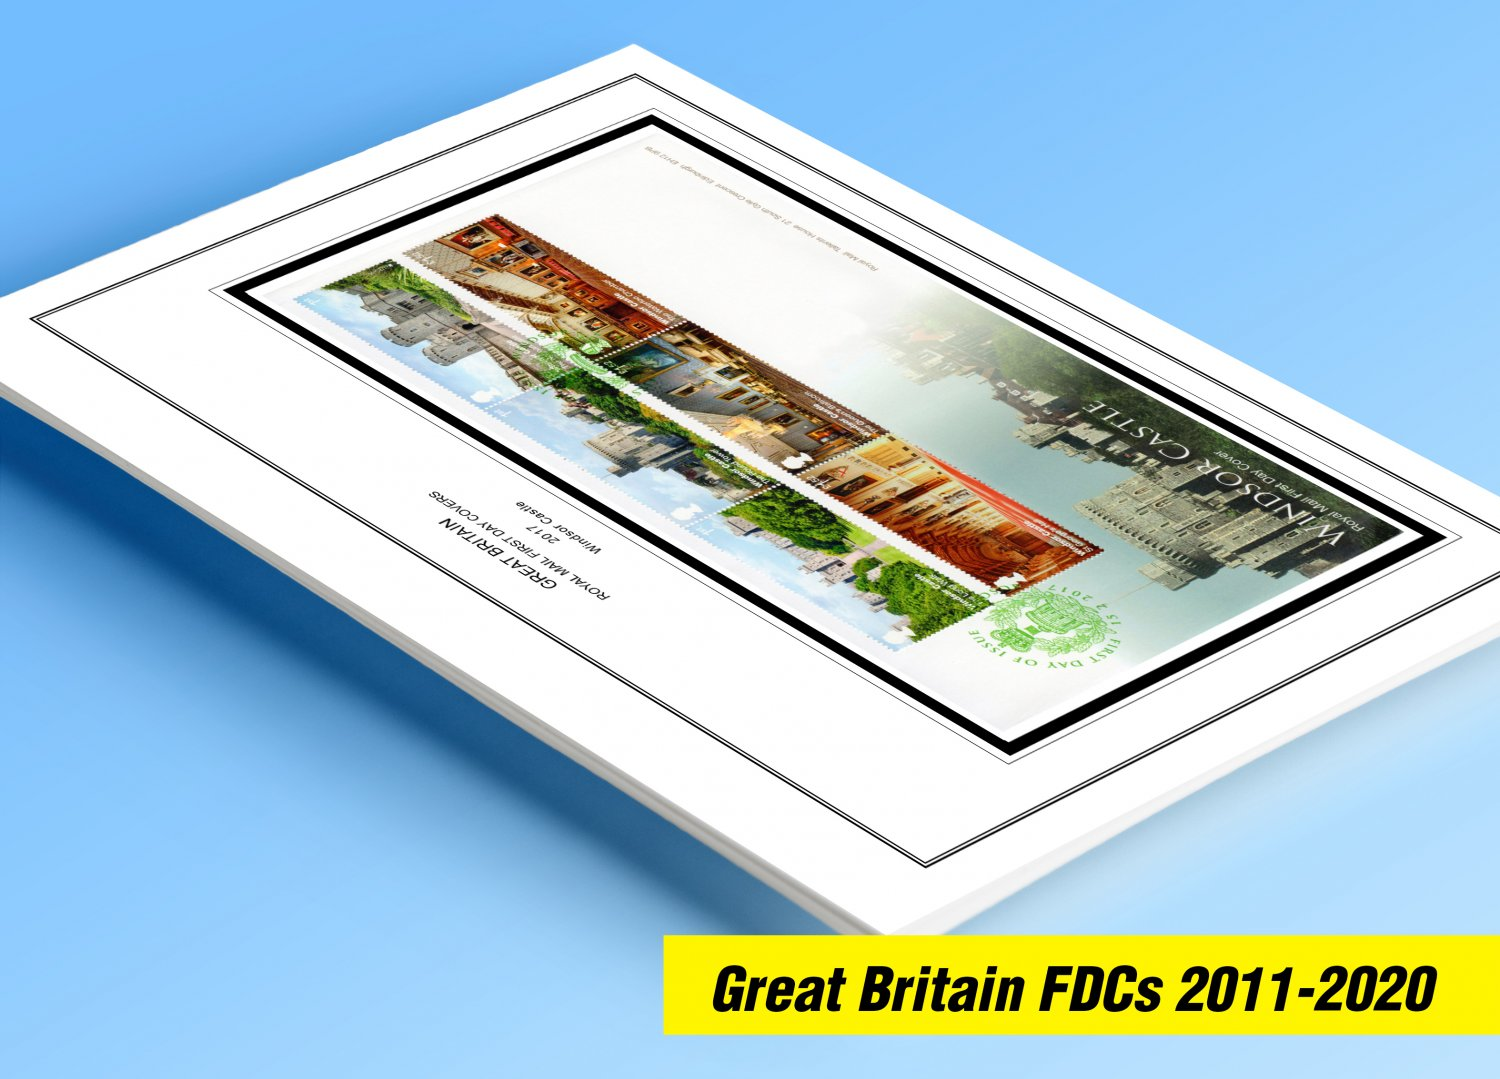 COLOR PRINTED GREAT BRITAIN FDCs 2011-2020 STAMP ALBUM PAGES (310 illustrated pages)